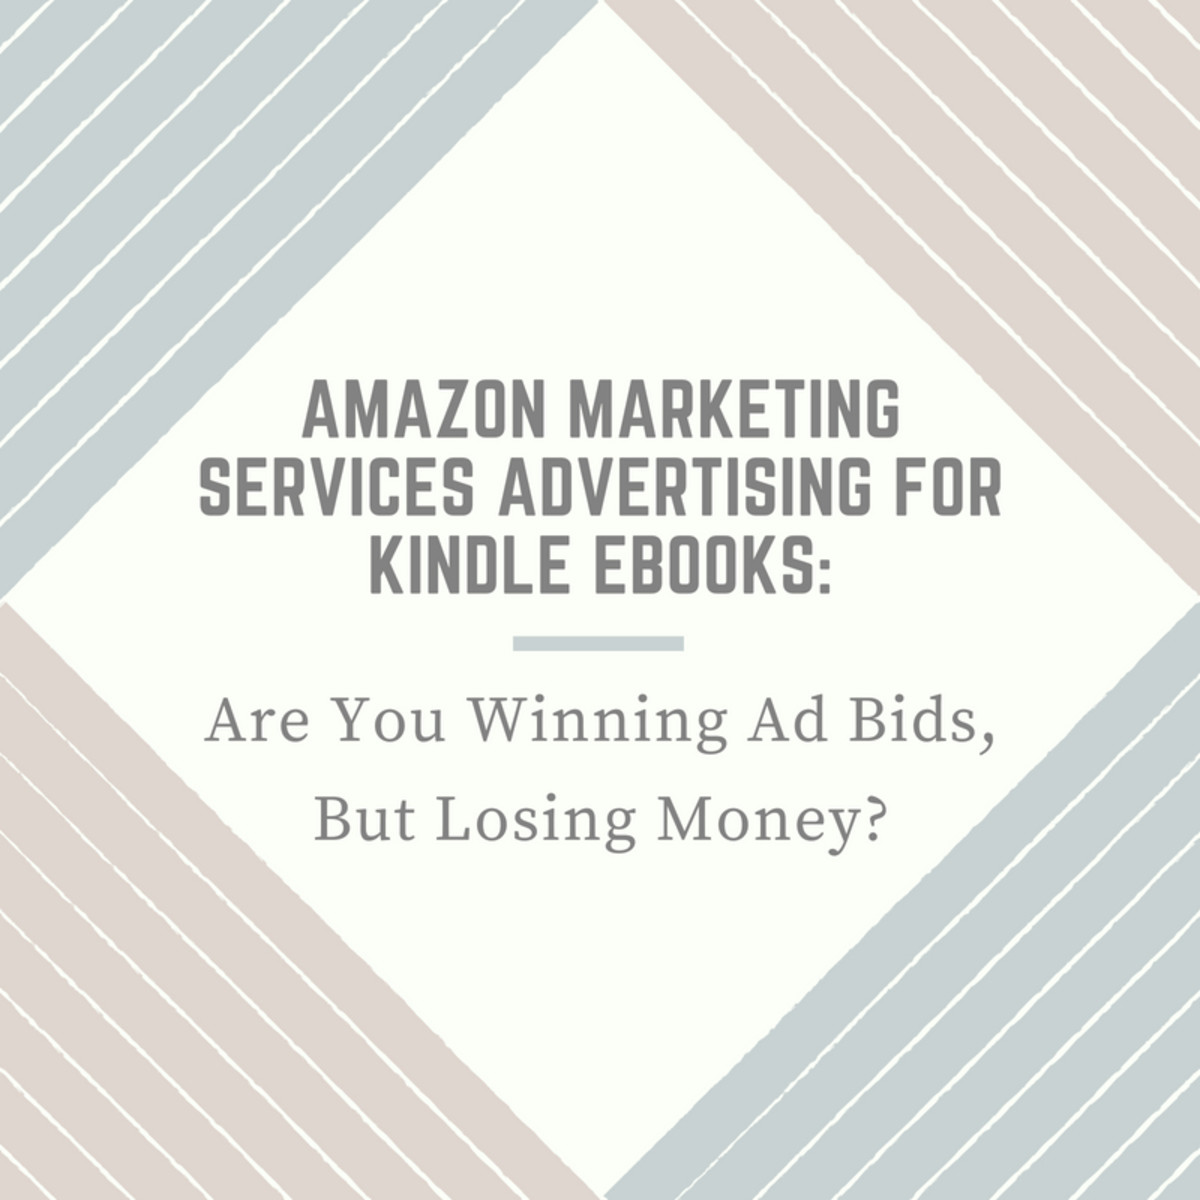 Amazon Marketing Services Advertising for Kindle Ebooks: Are You Winning Ad Bids, but Losing Money?